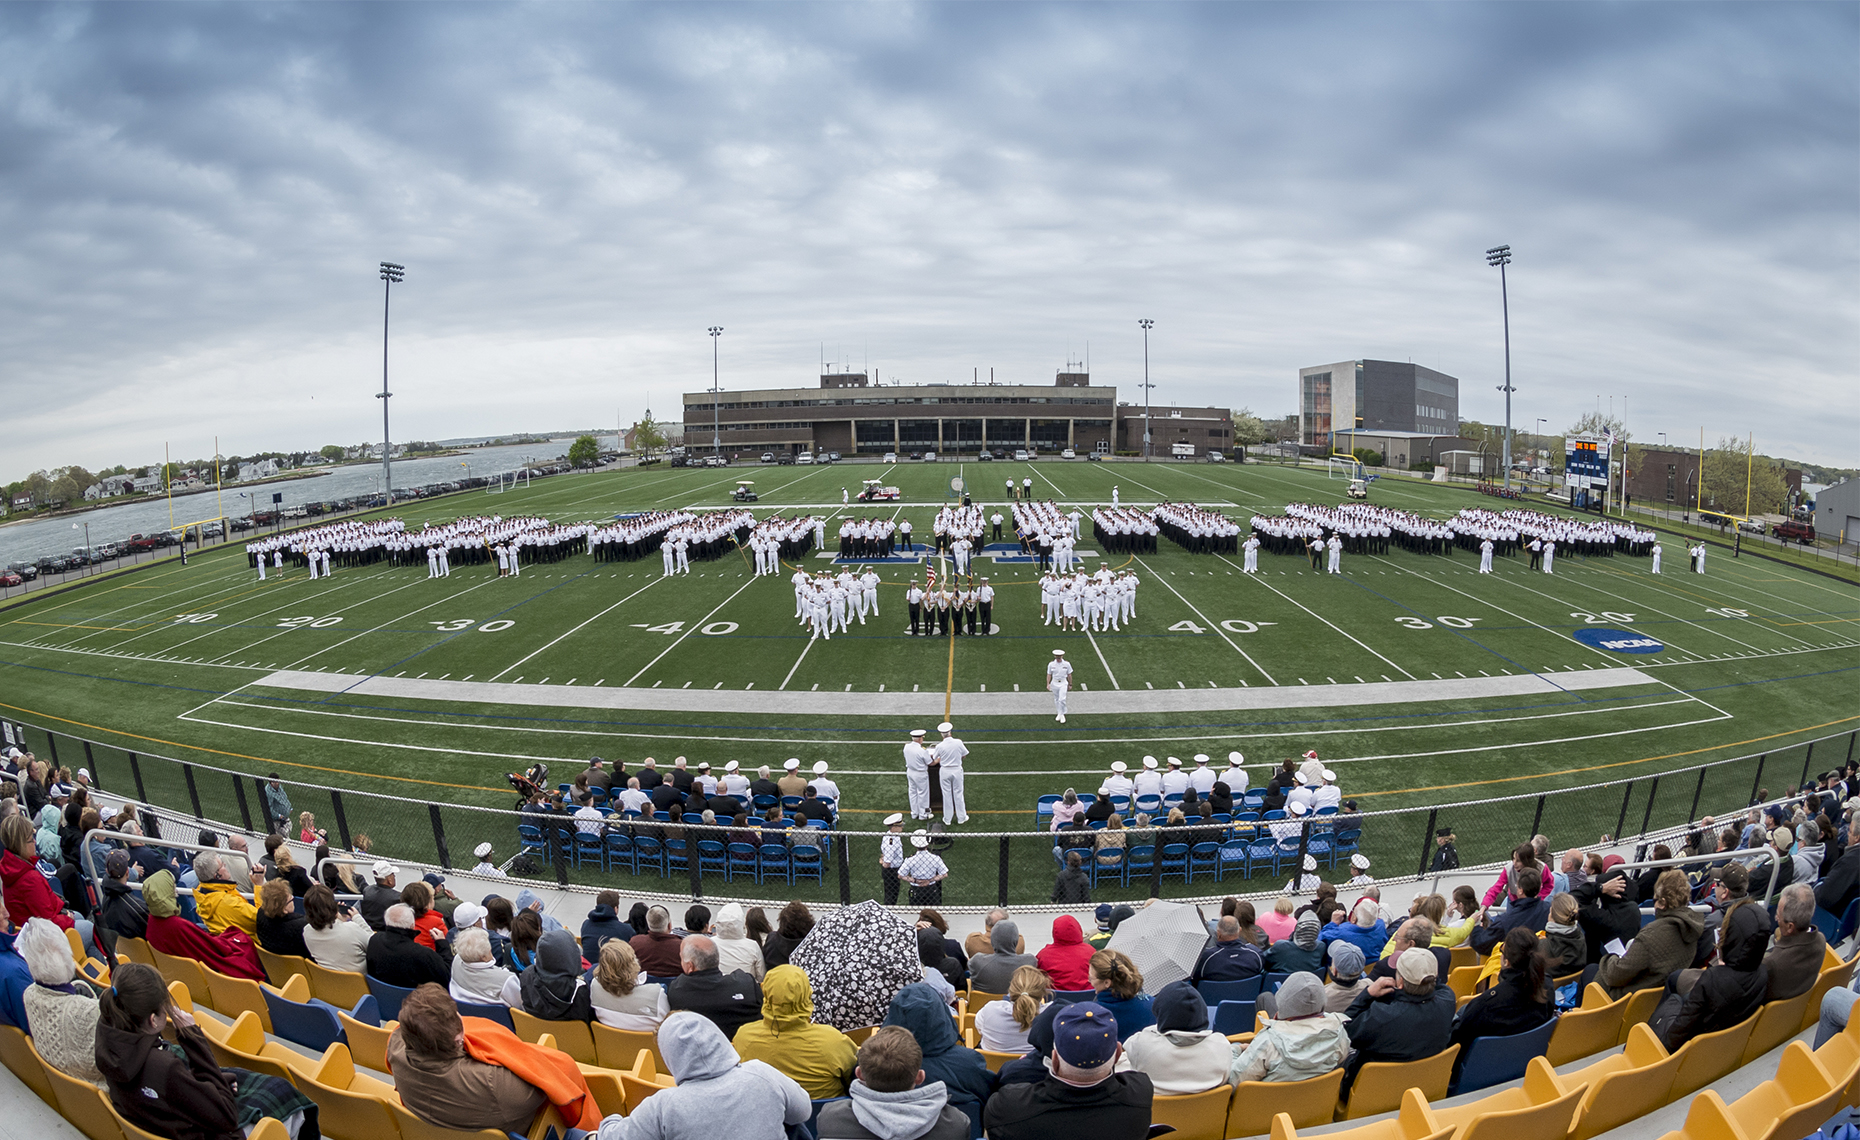 Wide angle photograph showing ceremony held at Mass Maritime Academy